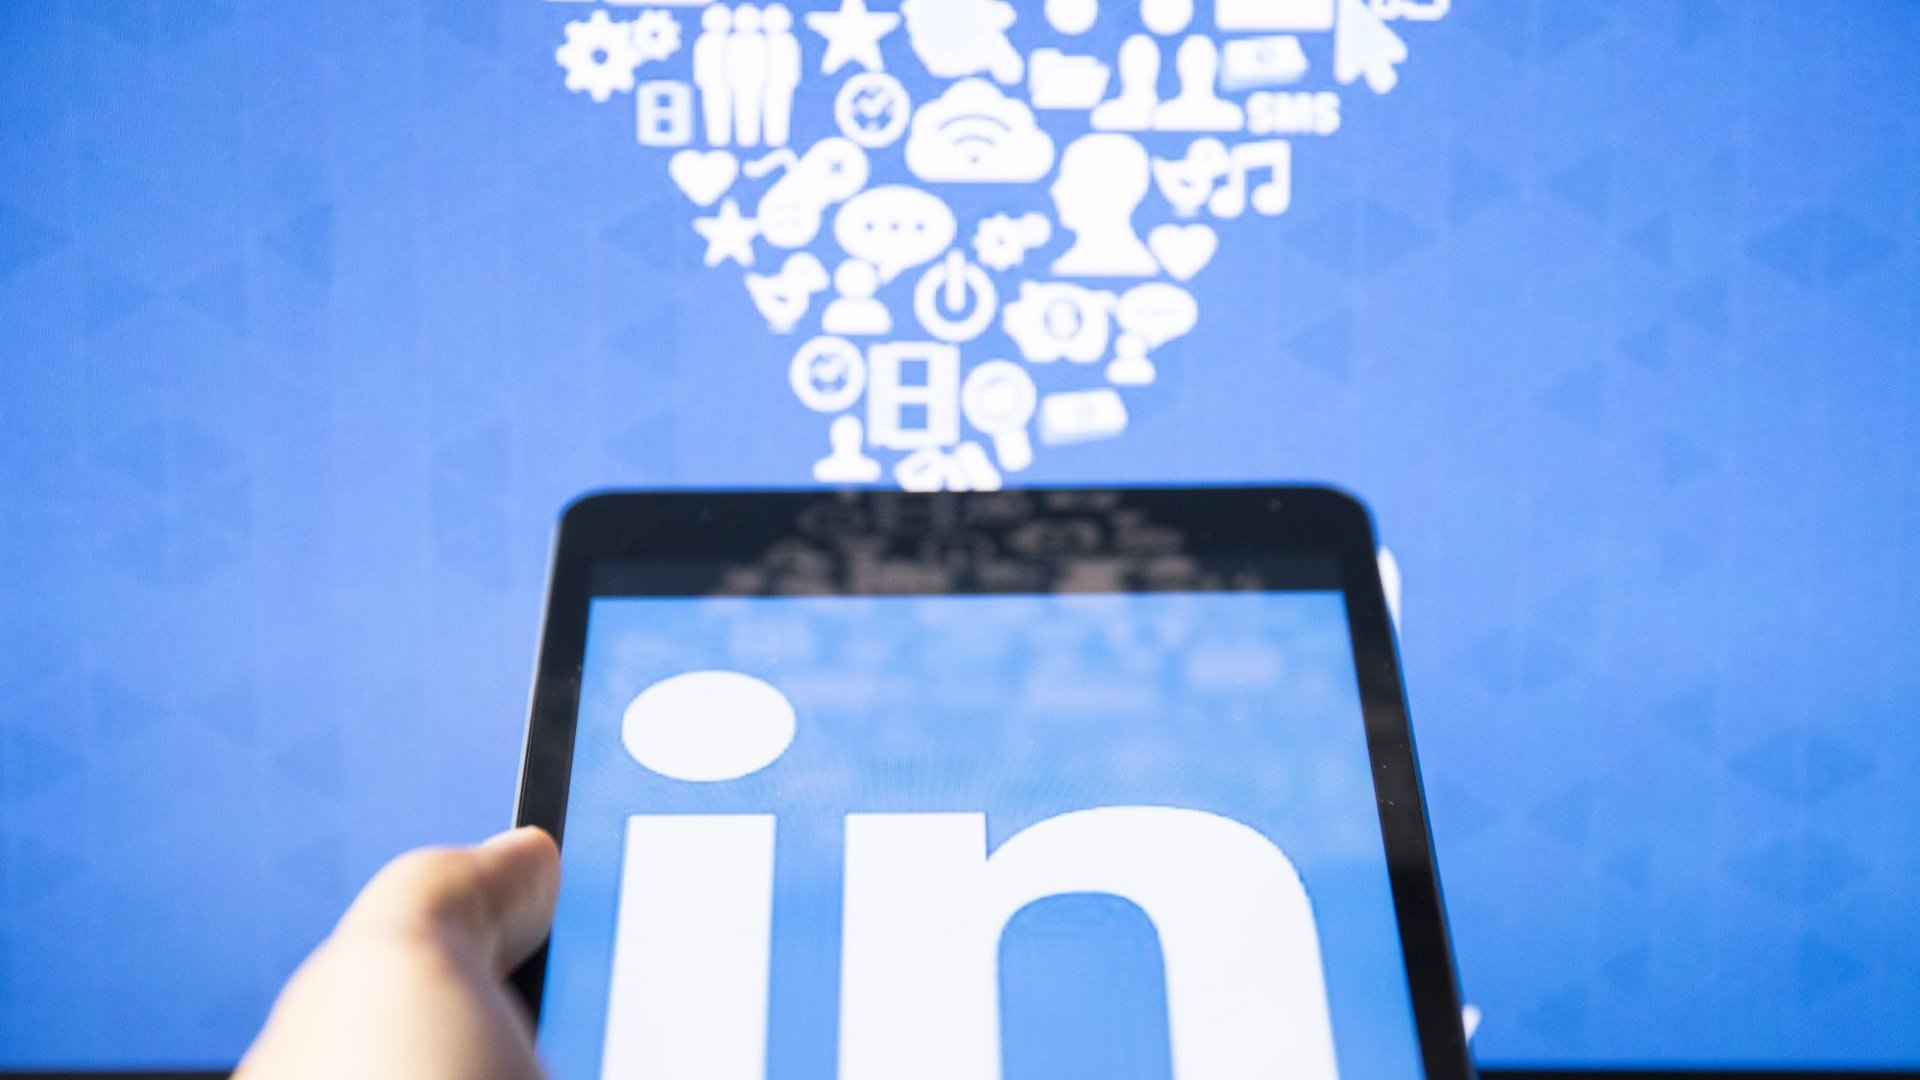 Resolve to Do LinkedIn Better Starting Right Now With Your Inbox